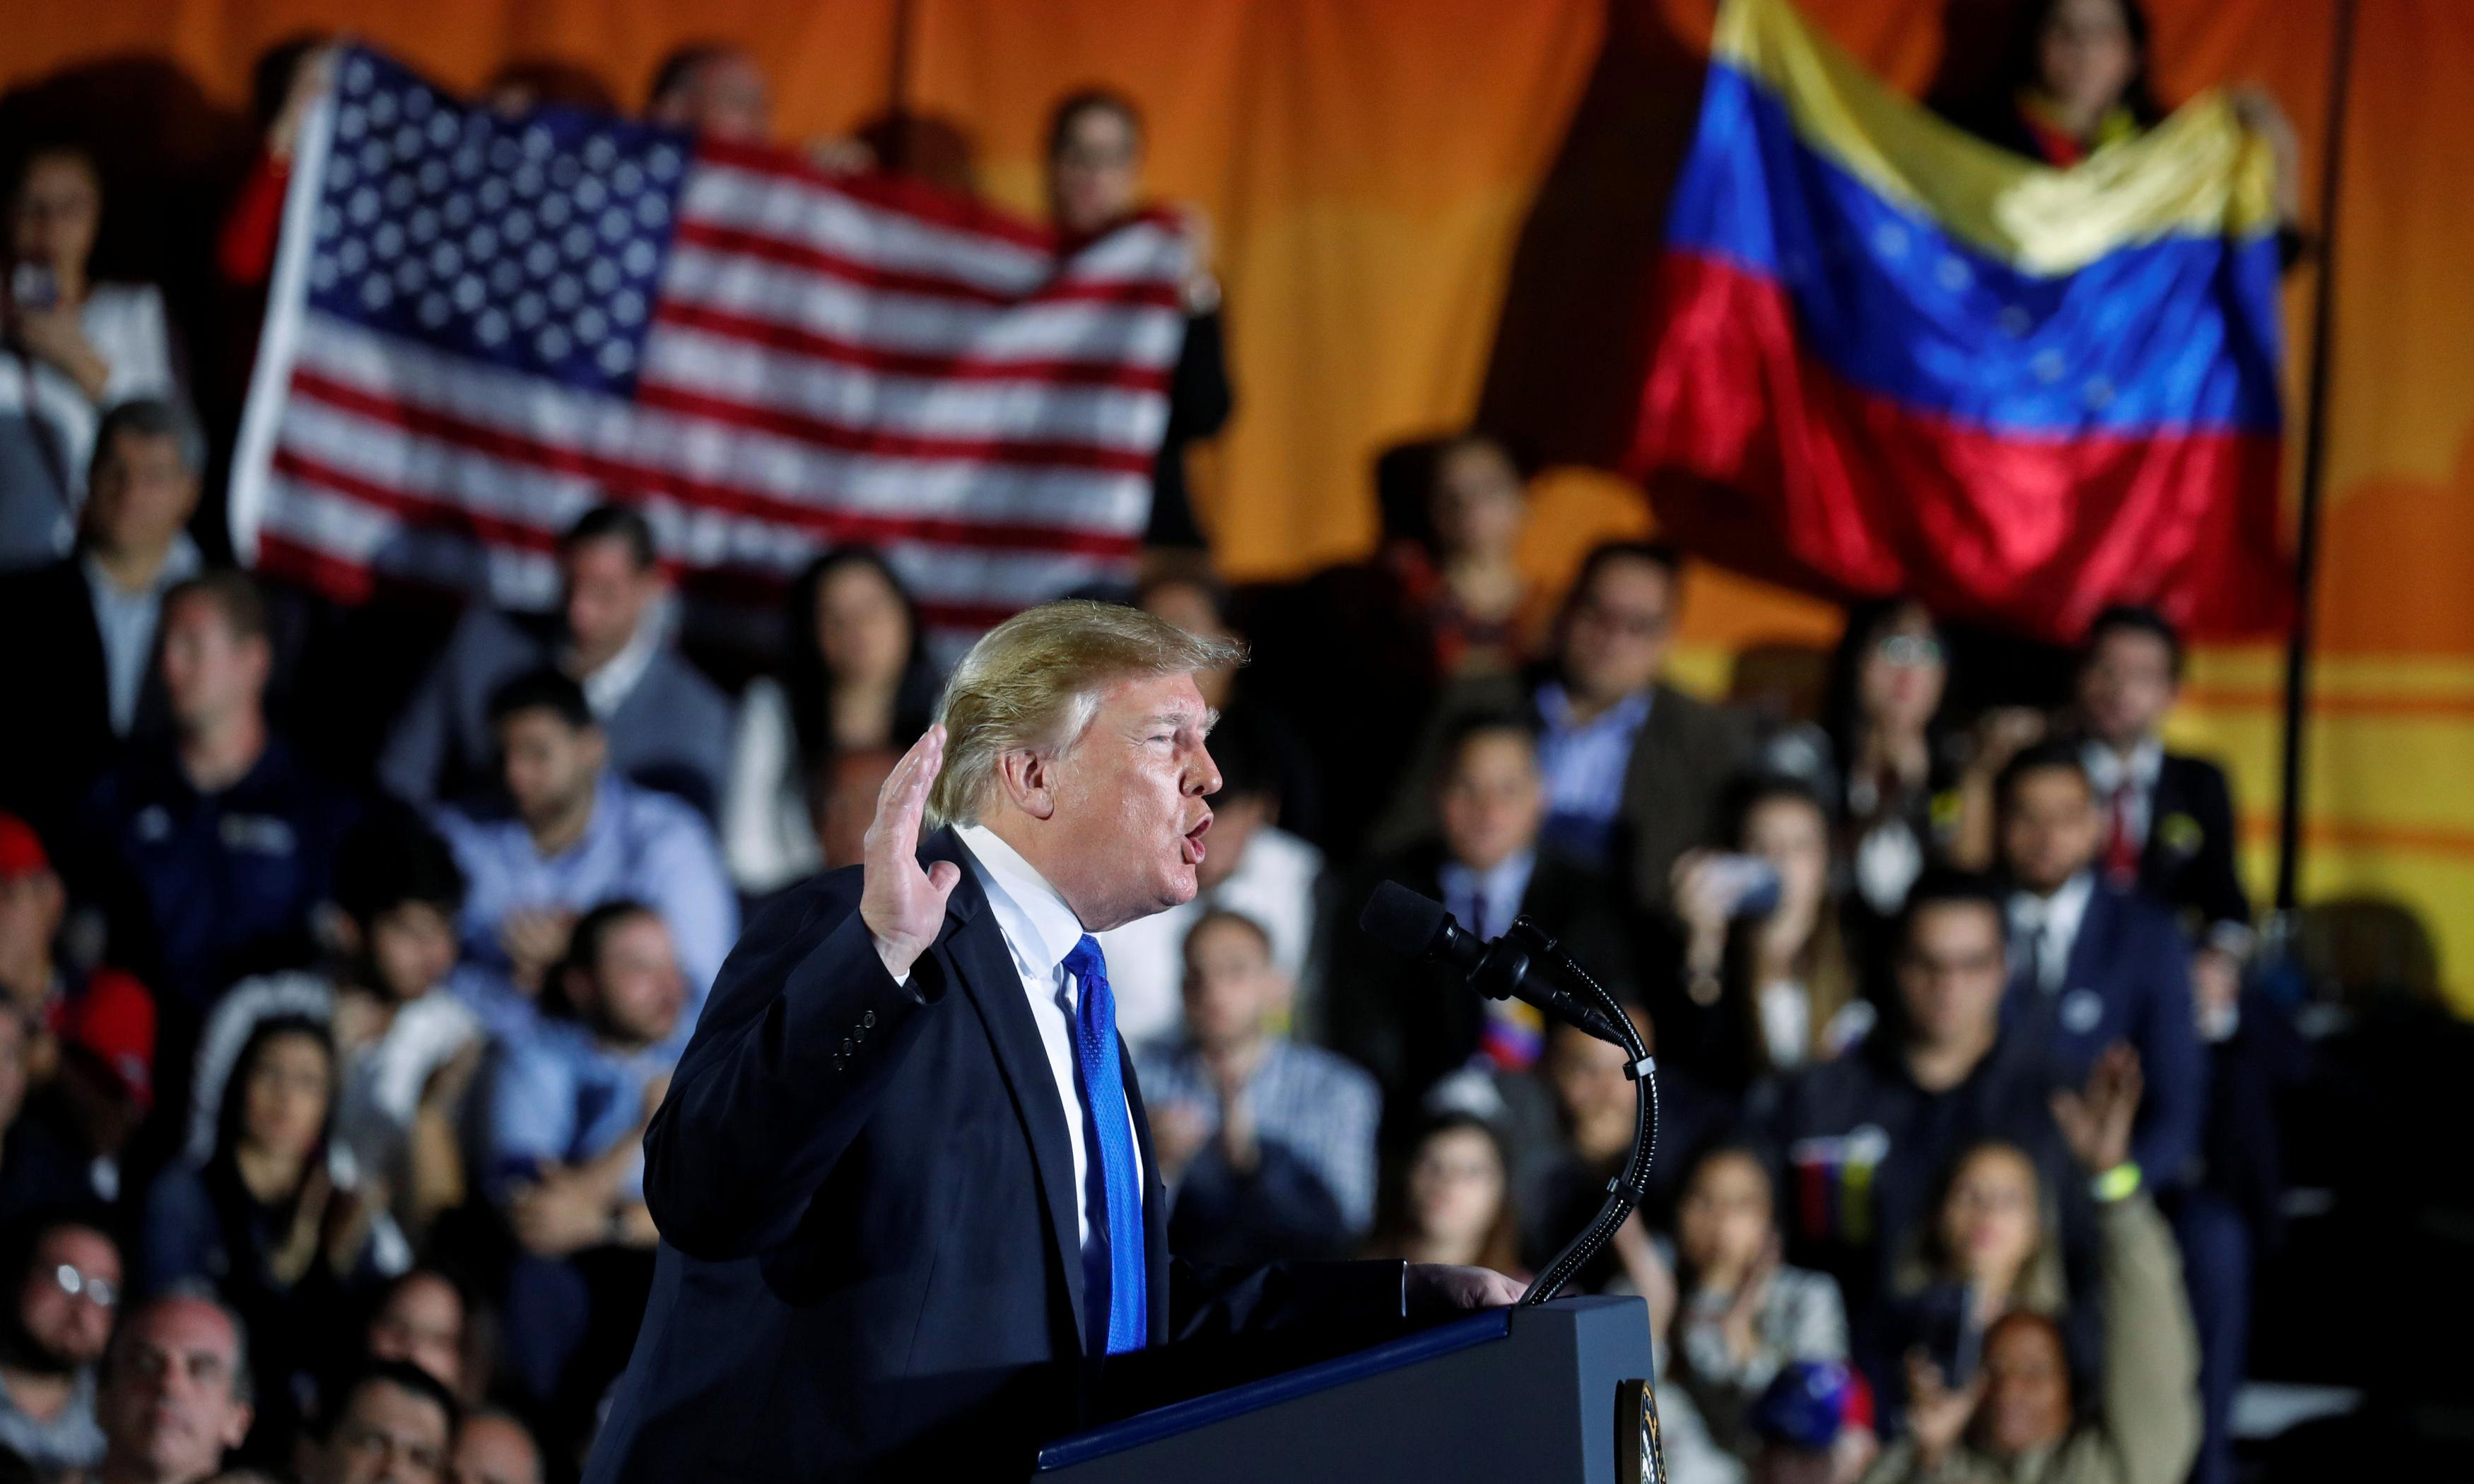 'Let your people go': Trump calls on Maduro loyalists to end nightmare of his regime